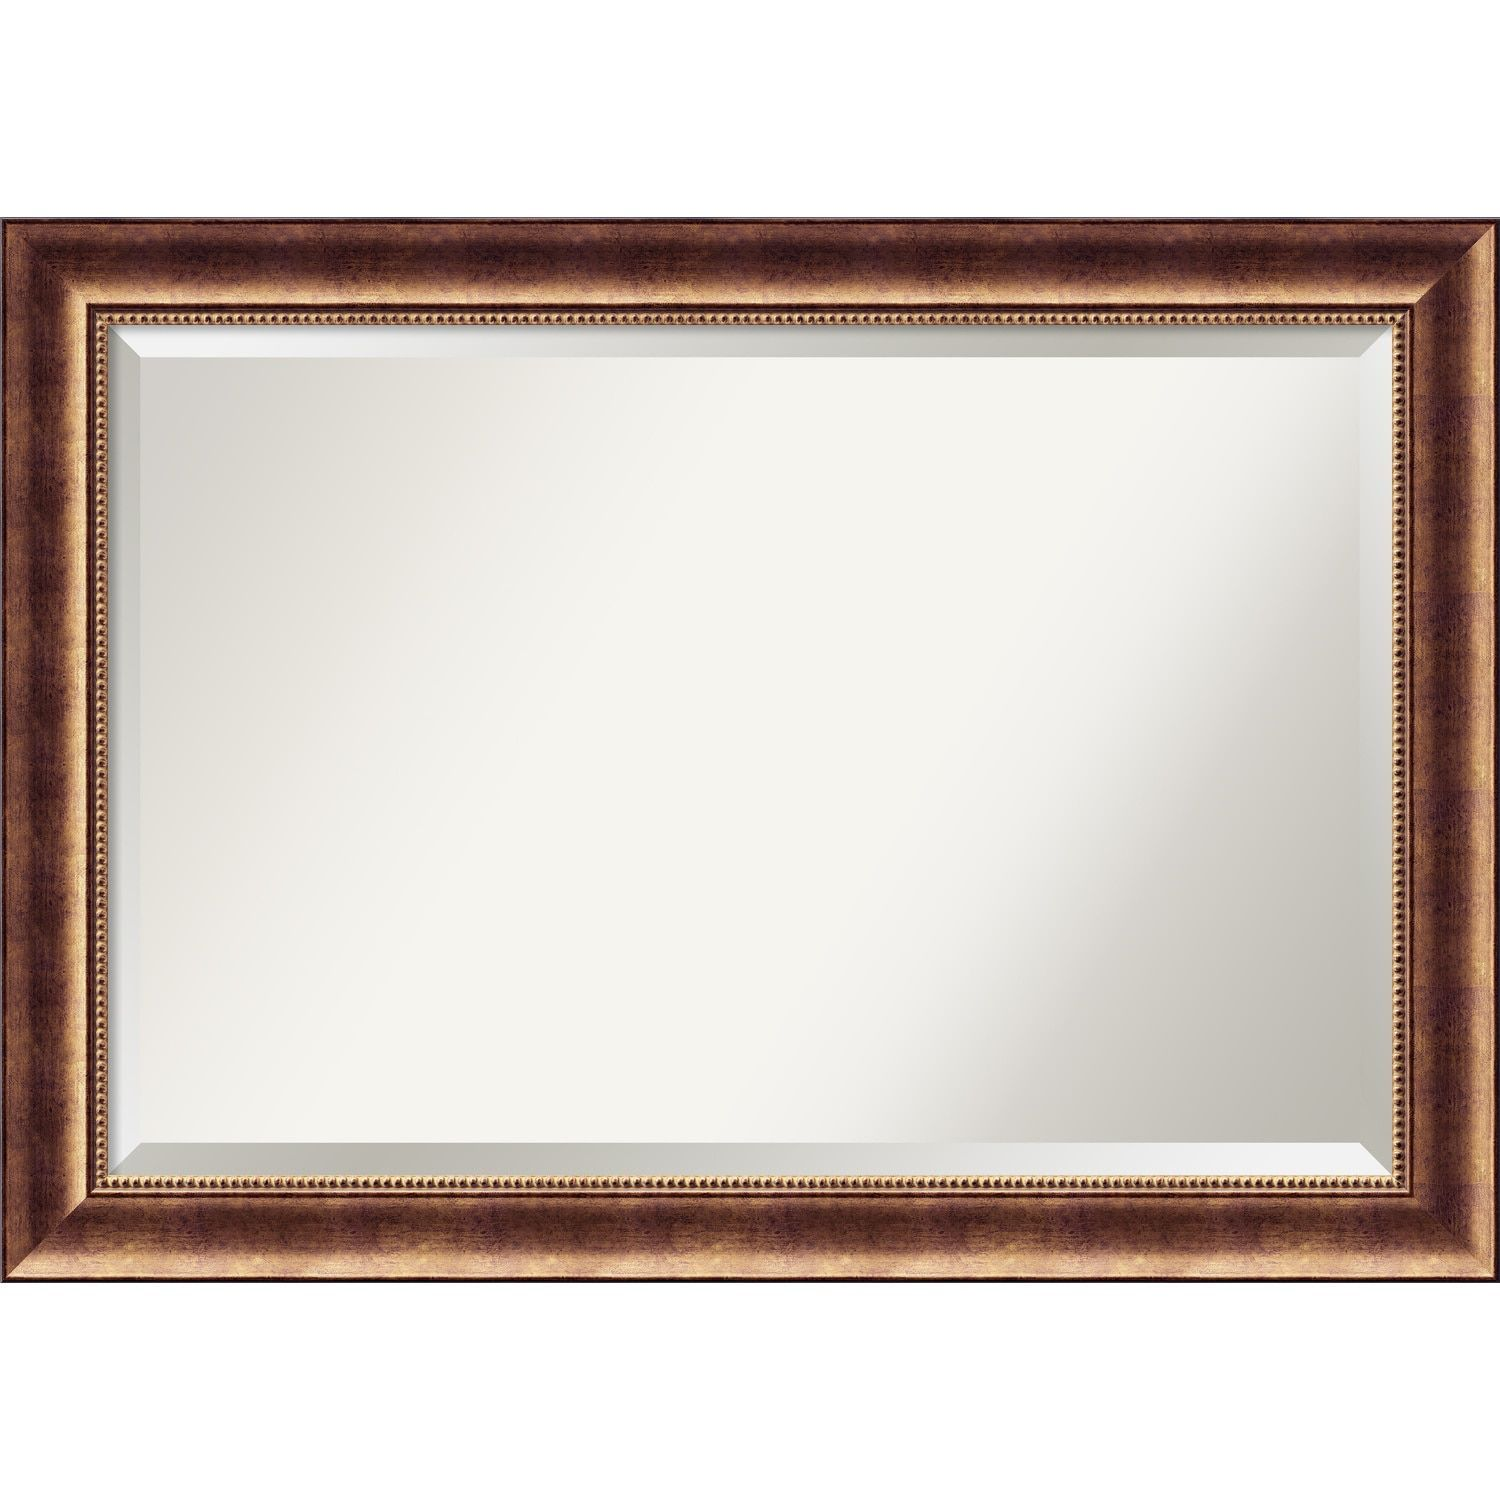 Bathroom mirror extra large fits standard 30 inch to 48 inch bathroom mirror extra large fits standard 30 inch to 48 inch cabinet manhattan bronze 42 x 30 inch by amanti art jeuxipadfo Image collections